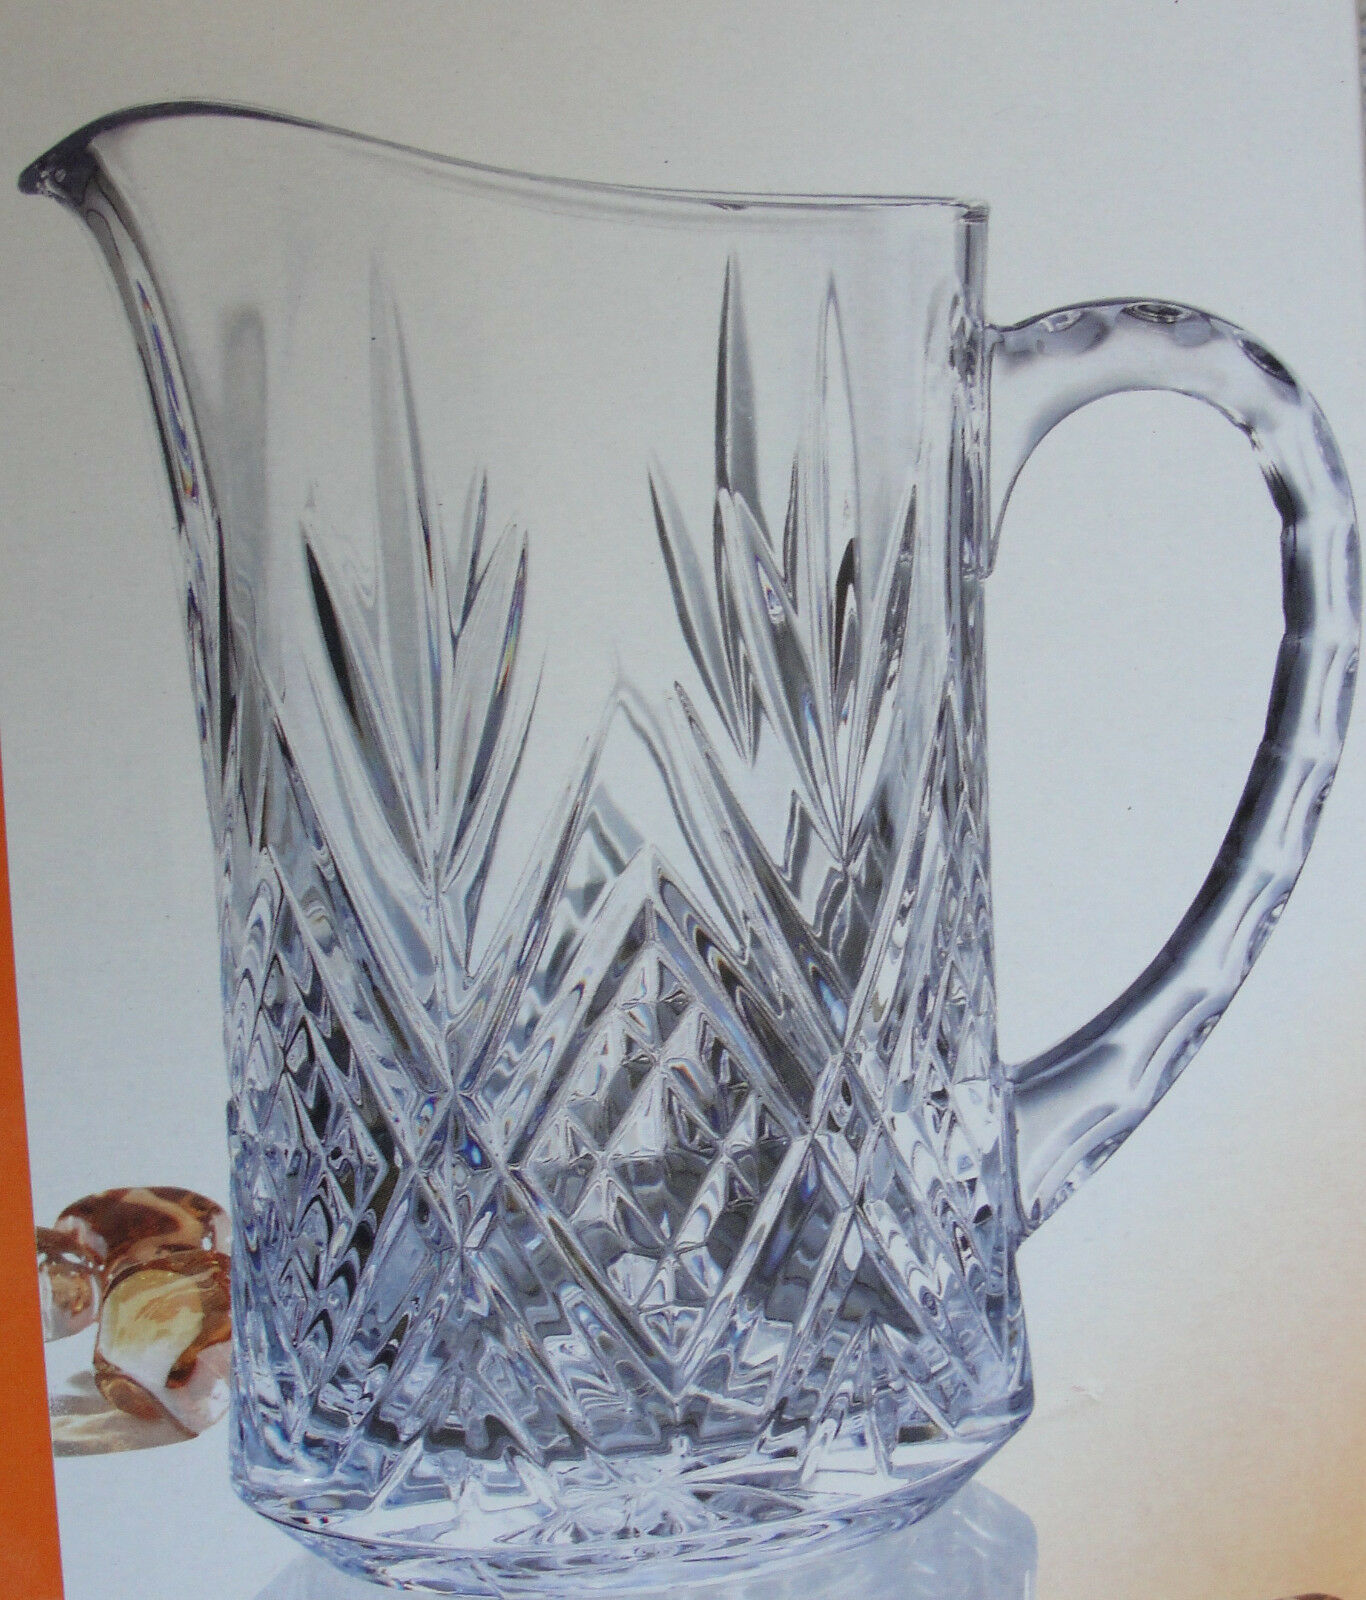 """CRISTAL D'ARQUES 'PARIS"""" PITCHER 24%LEAD CRYSTAL MADE IN FRANCE CLEAR 46OZ. NEW  - $149.75"""